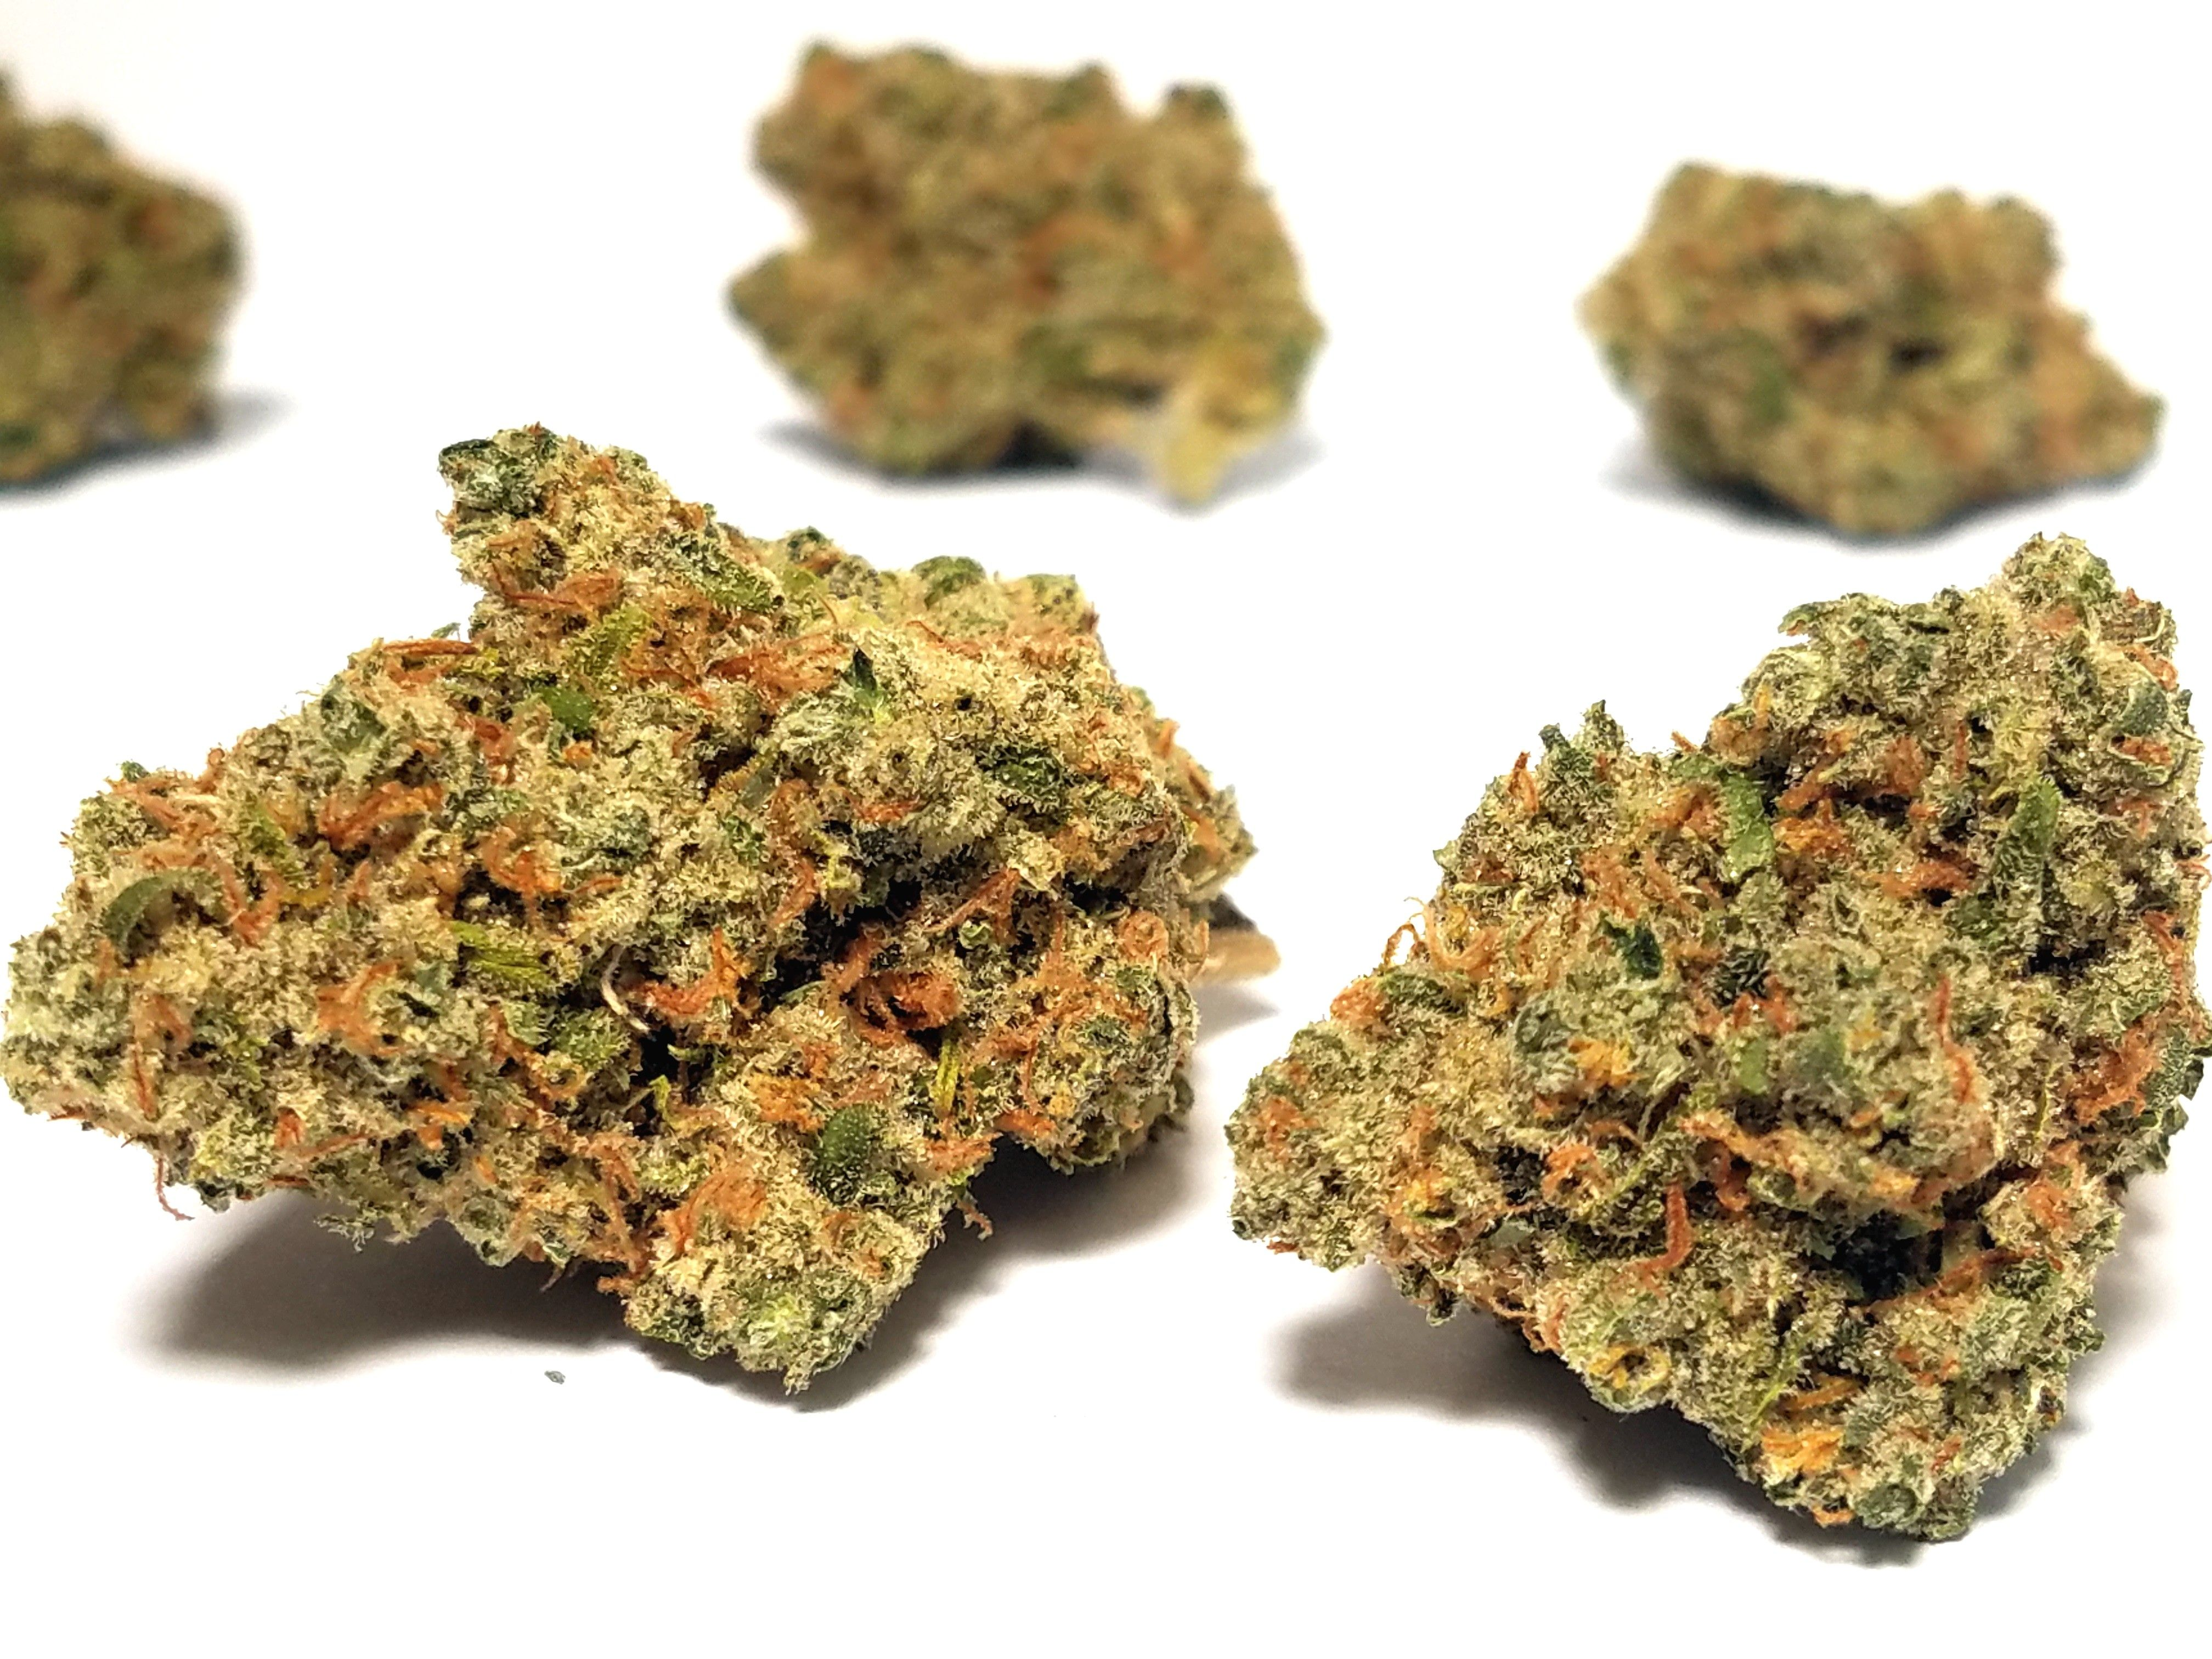 Thrive Gardens - Jack Herer, Sativa, Indoor